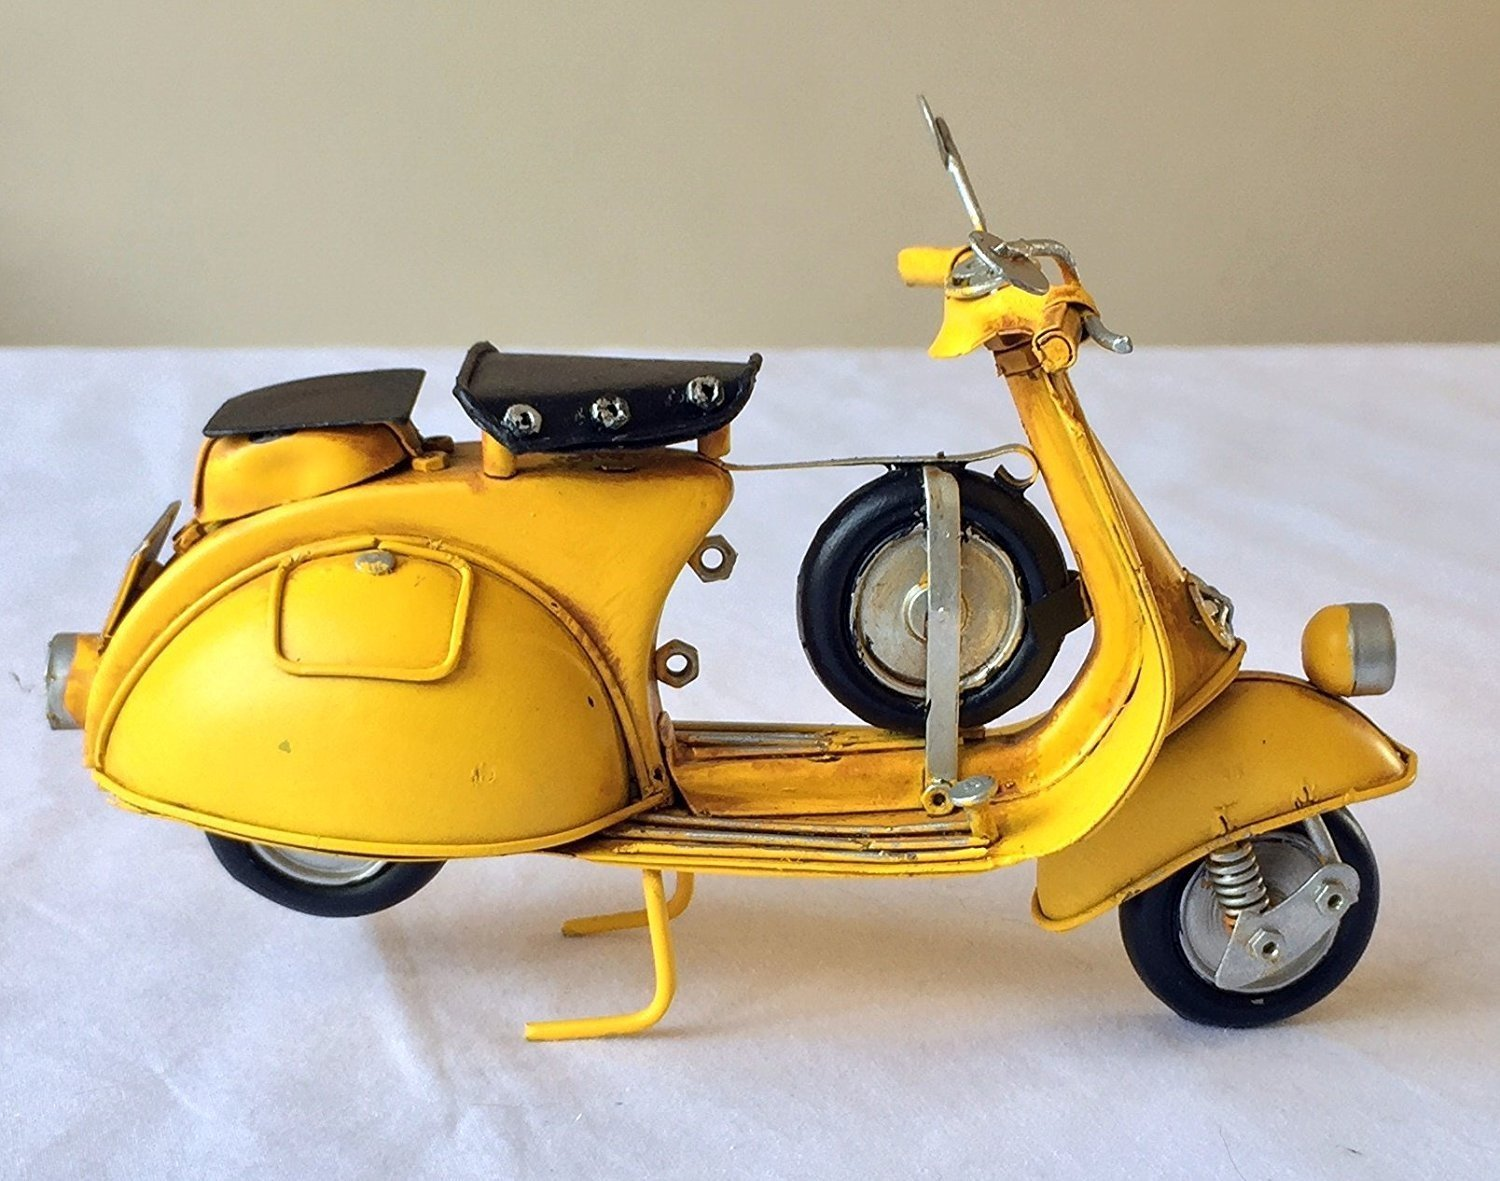 FandG Supplies Lovely large vintage retro metal Scooter Vespa Mod Bike Model 18cm long SIL Cream great gift ornament for a shelf or a desk!